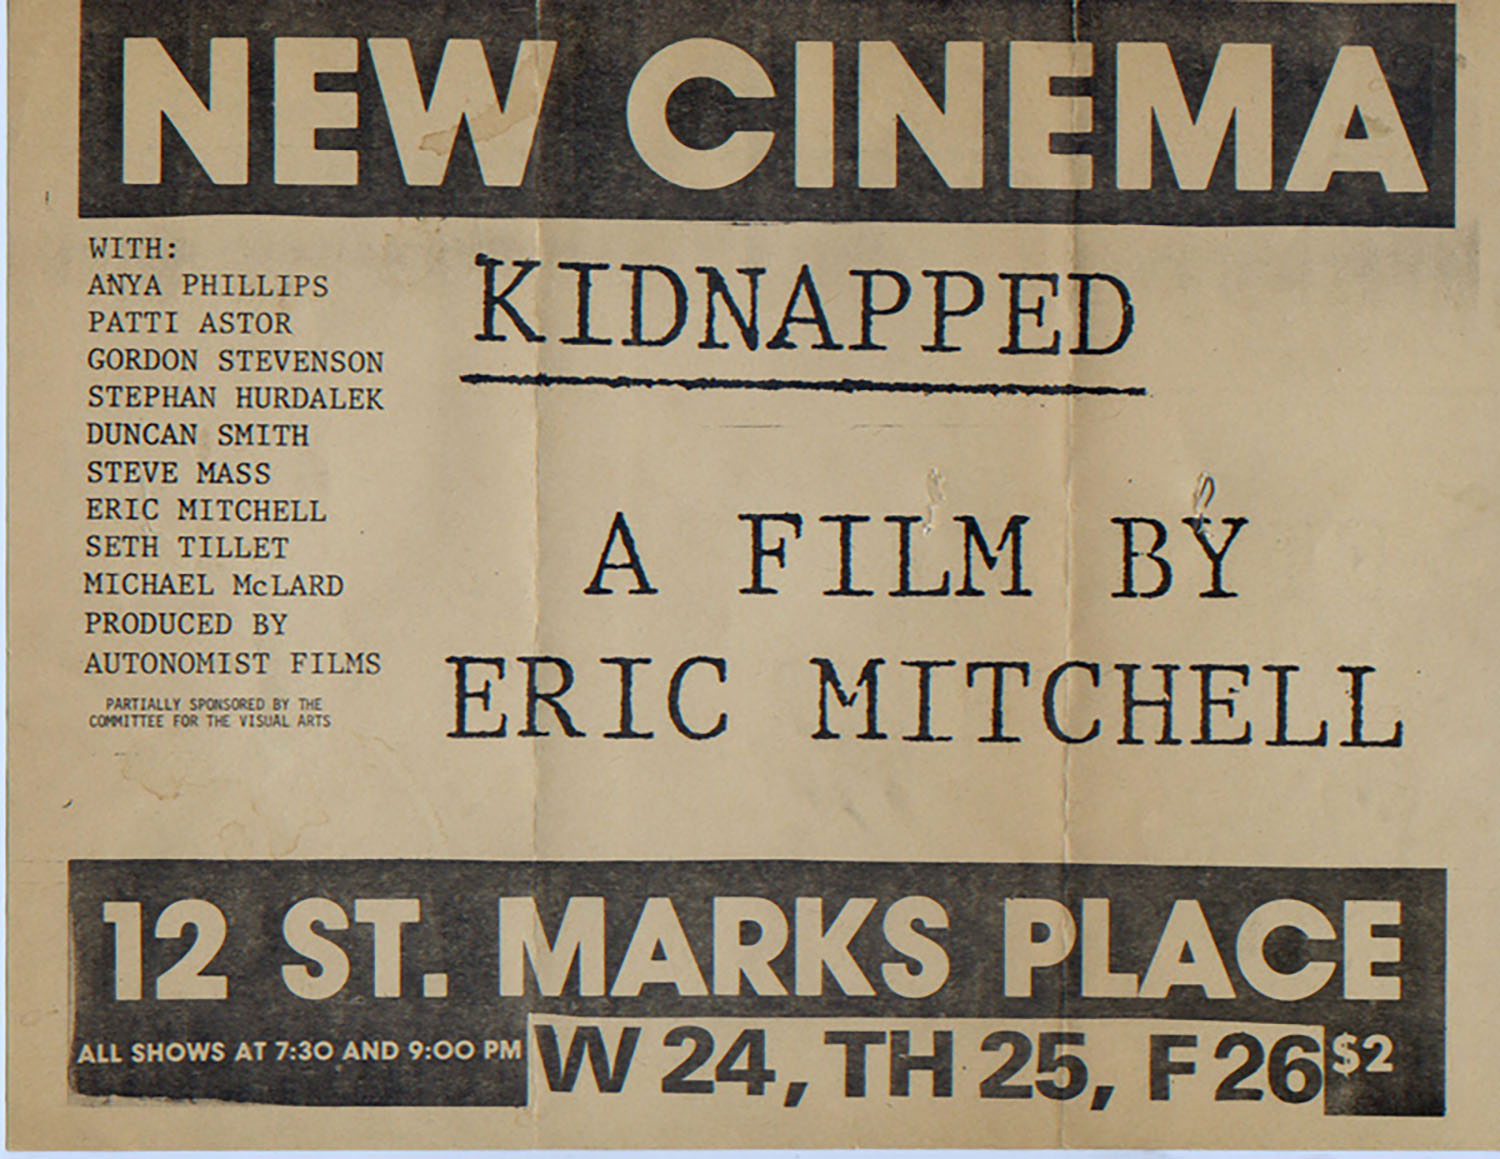 New Cinema, Eric Mitchell, Kidnapped, Poster, 1978